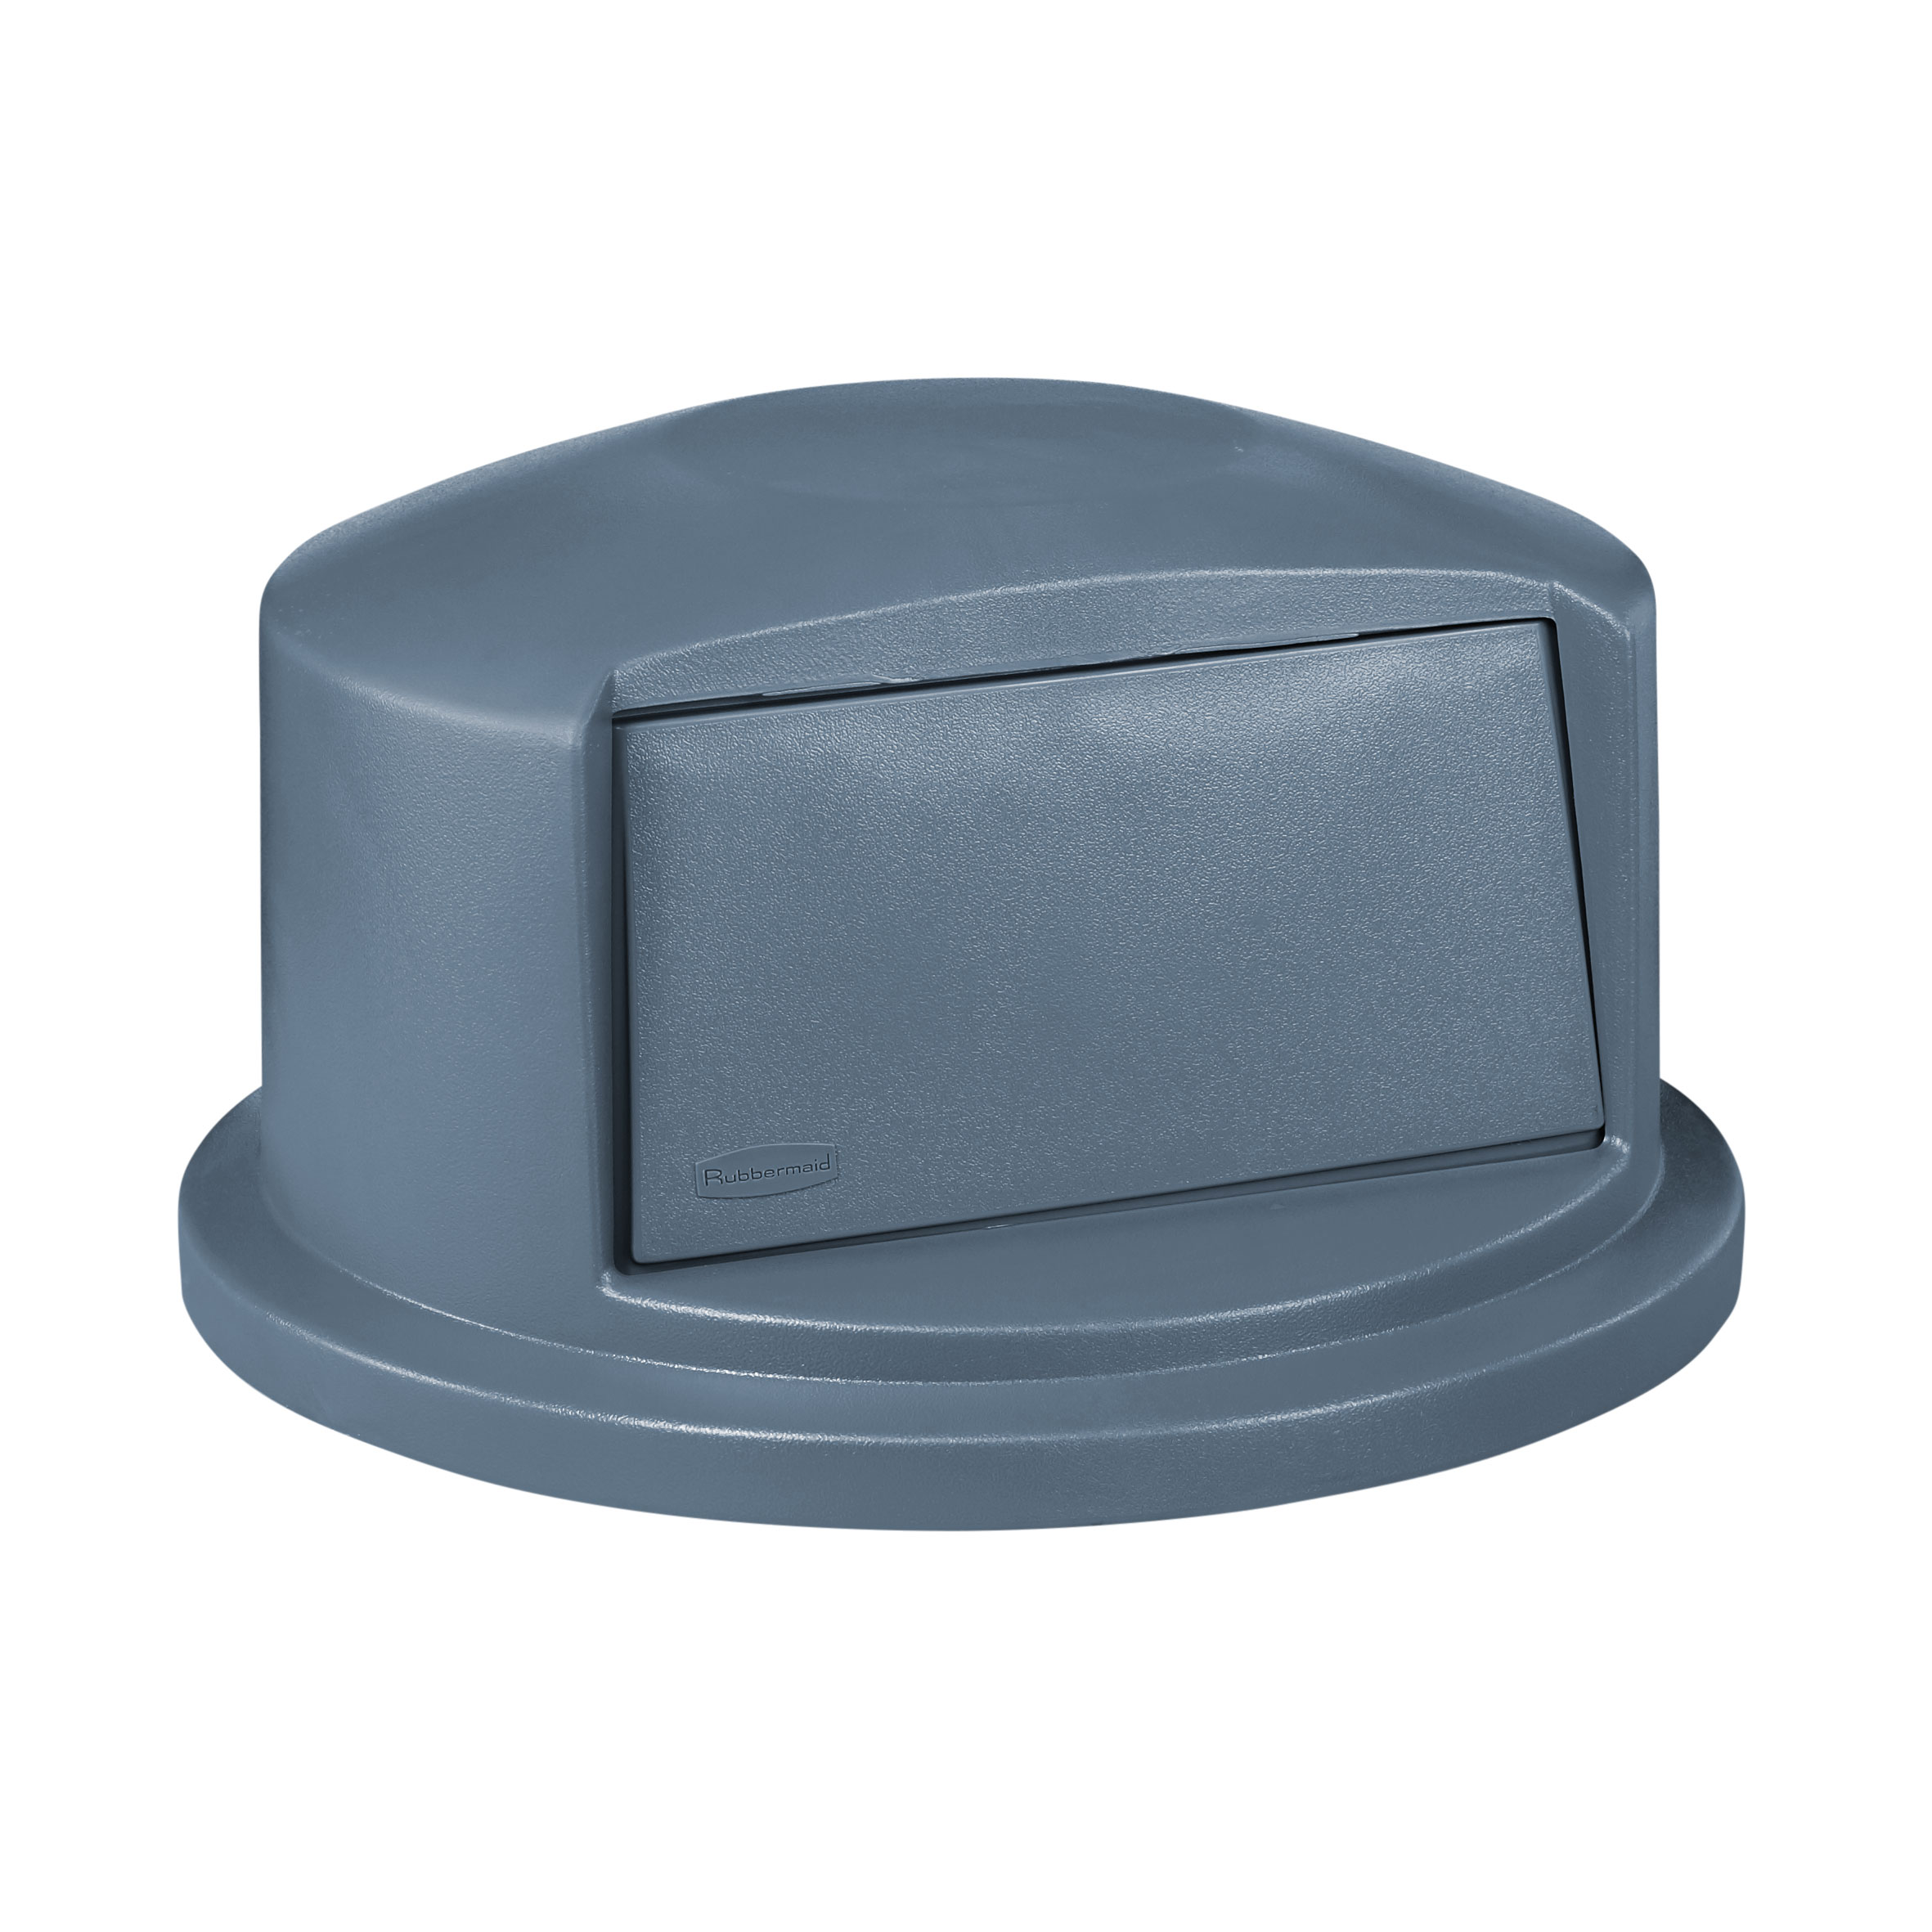 Rubbermaid Commercial Products FG265788GRAY trash receptacle lid / top